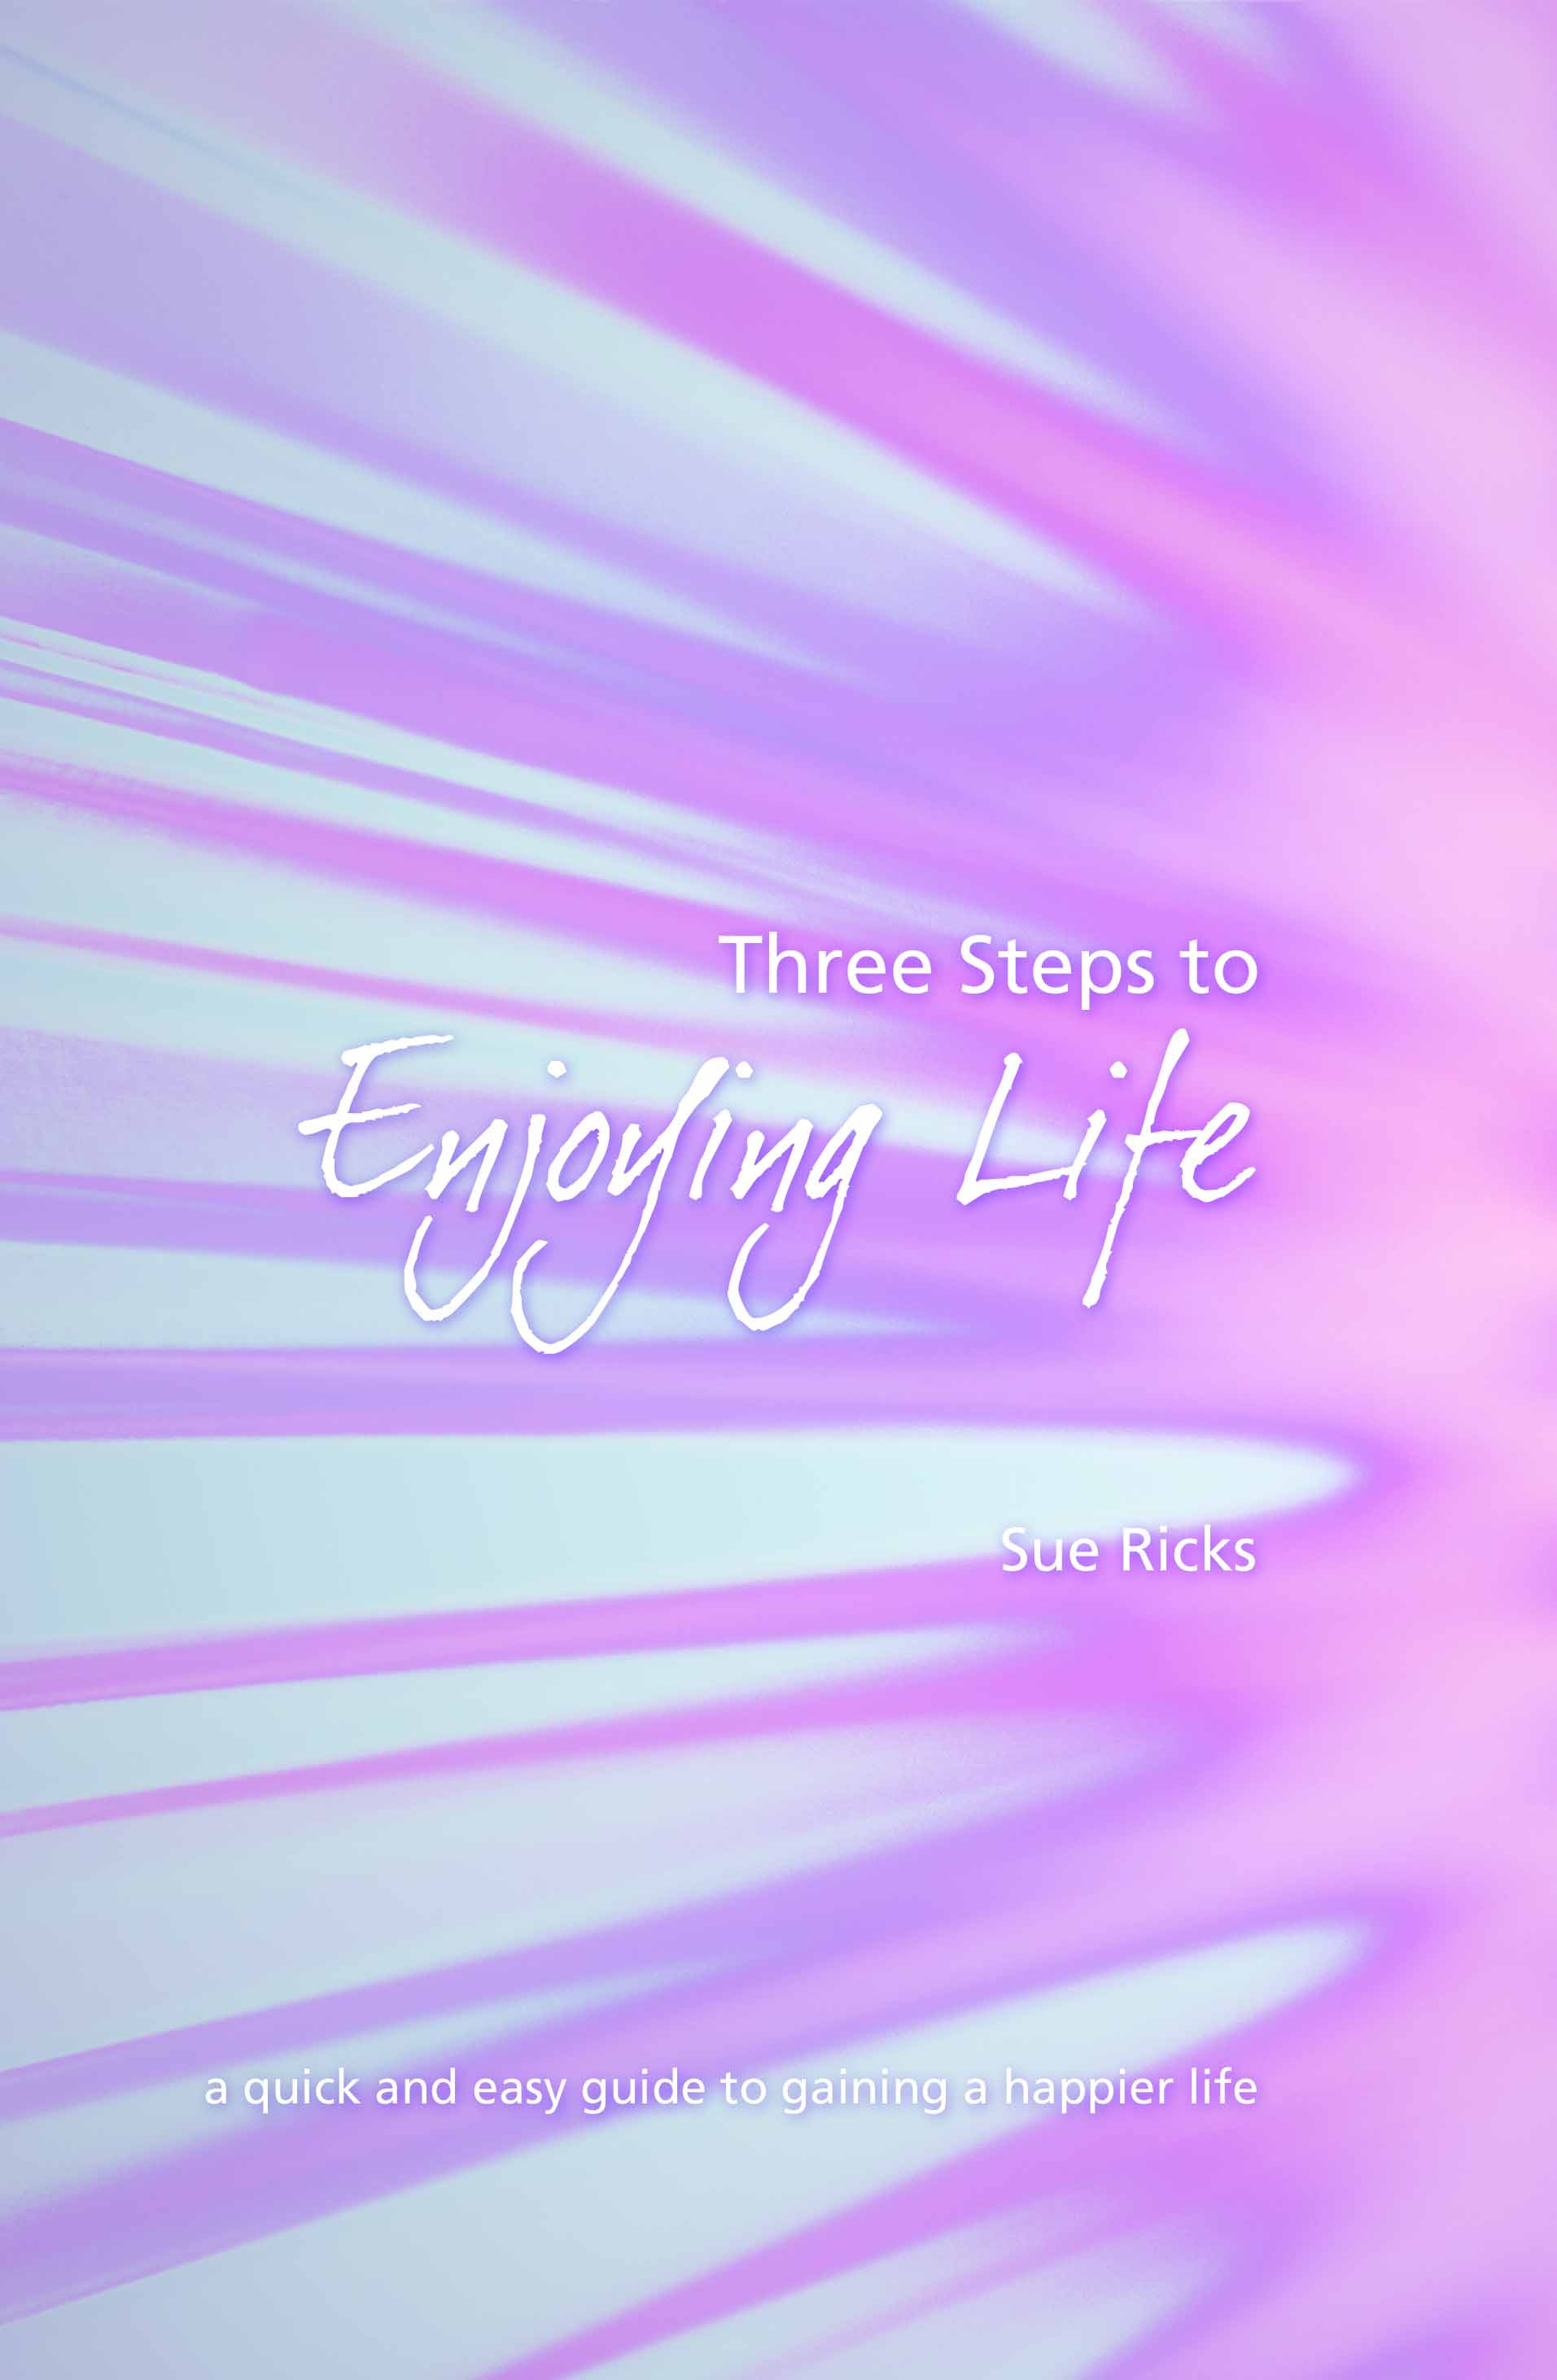 Three Steps to Enjoying Life by Sue Ricks